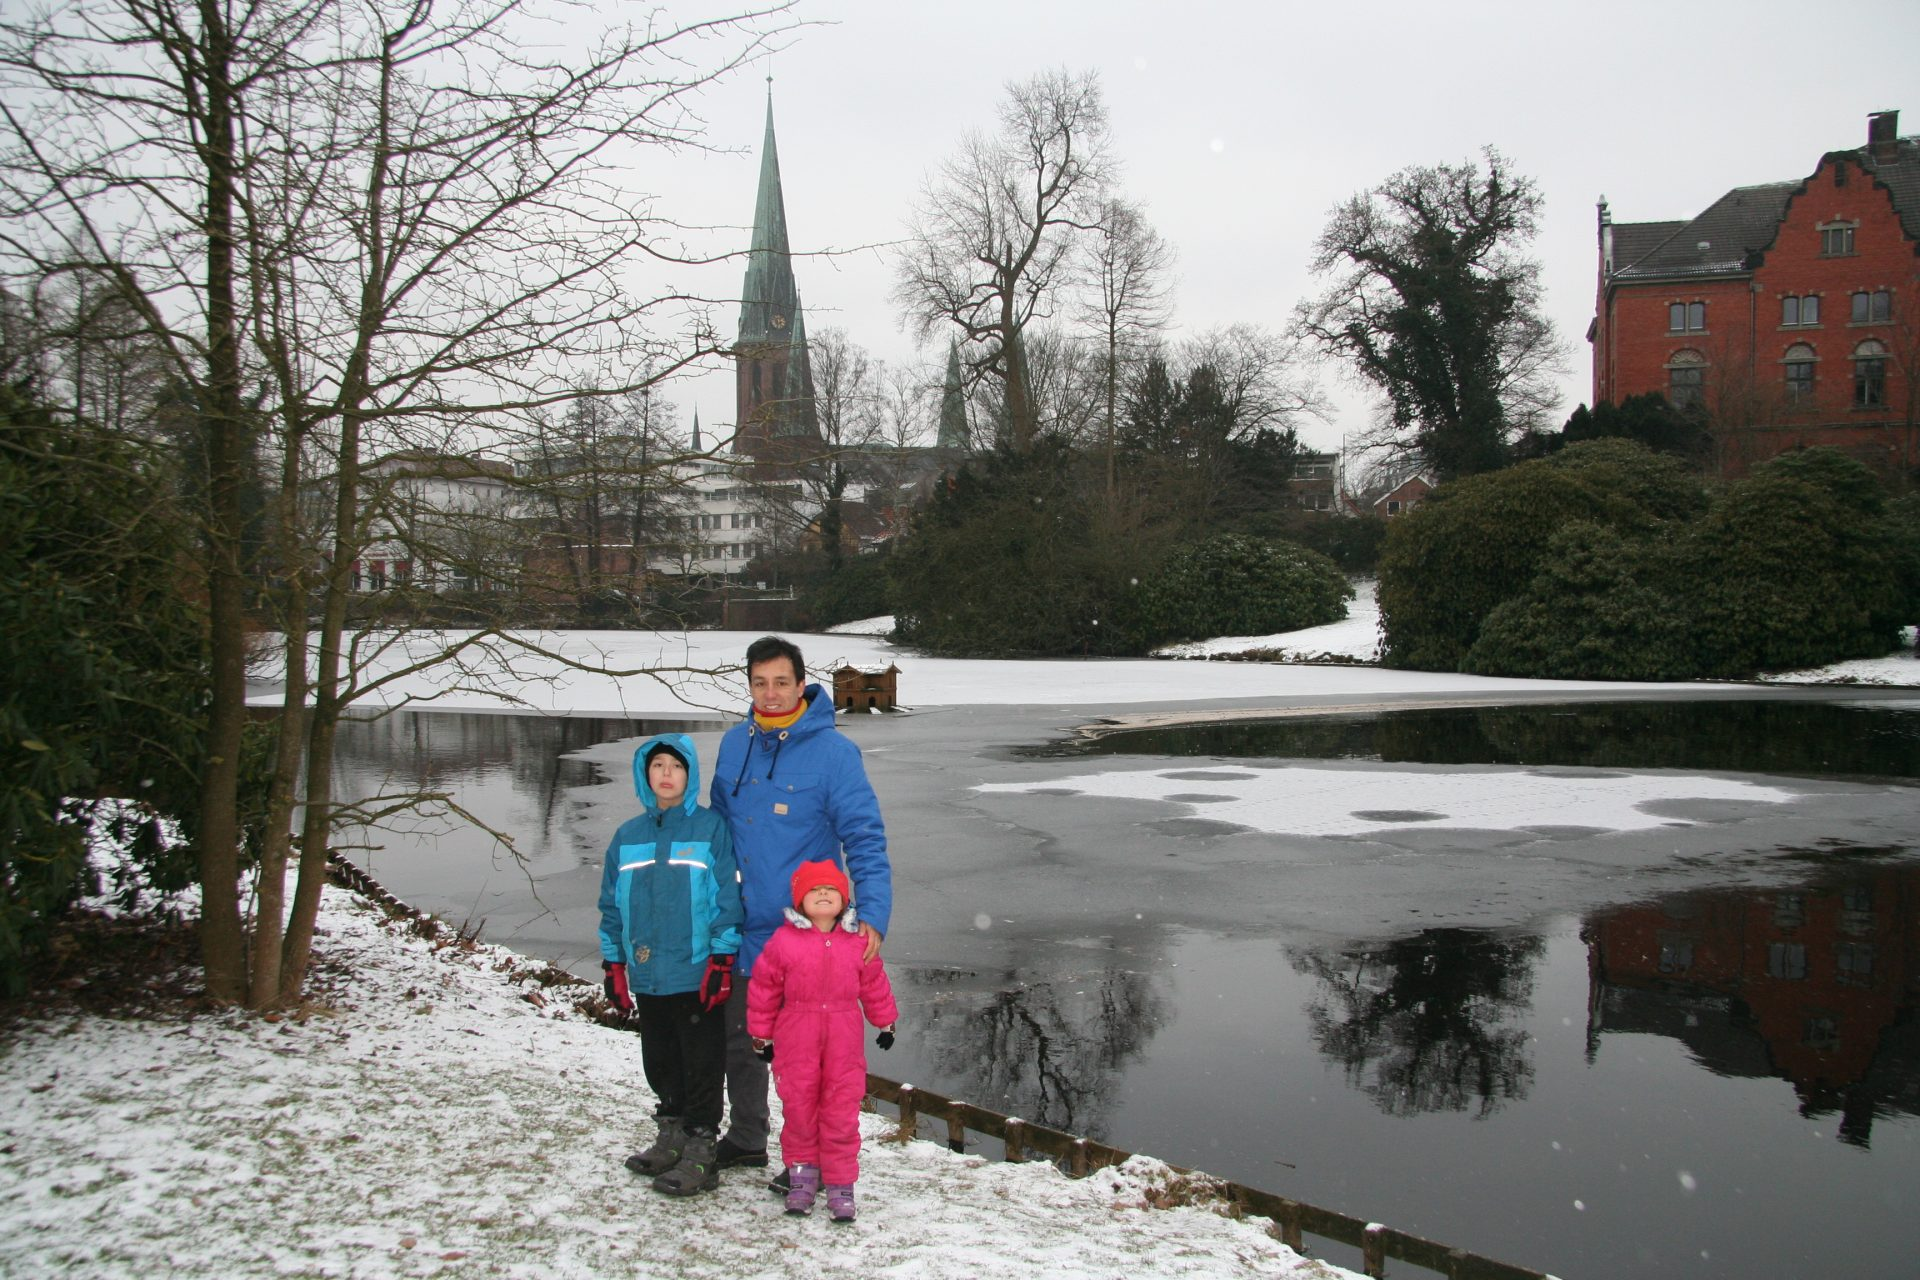 A big thank you to my whanau for supporting and accompanying me in this adventure. Here they are in the Schlossgarten (Palace Garden) in the winter snow! The main church of Oldenburg, Lambertikirche, is in the background. Jan 2013. Photo by Heidi Meudt.